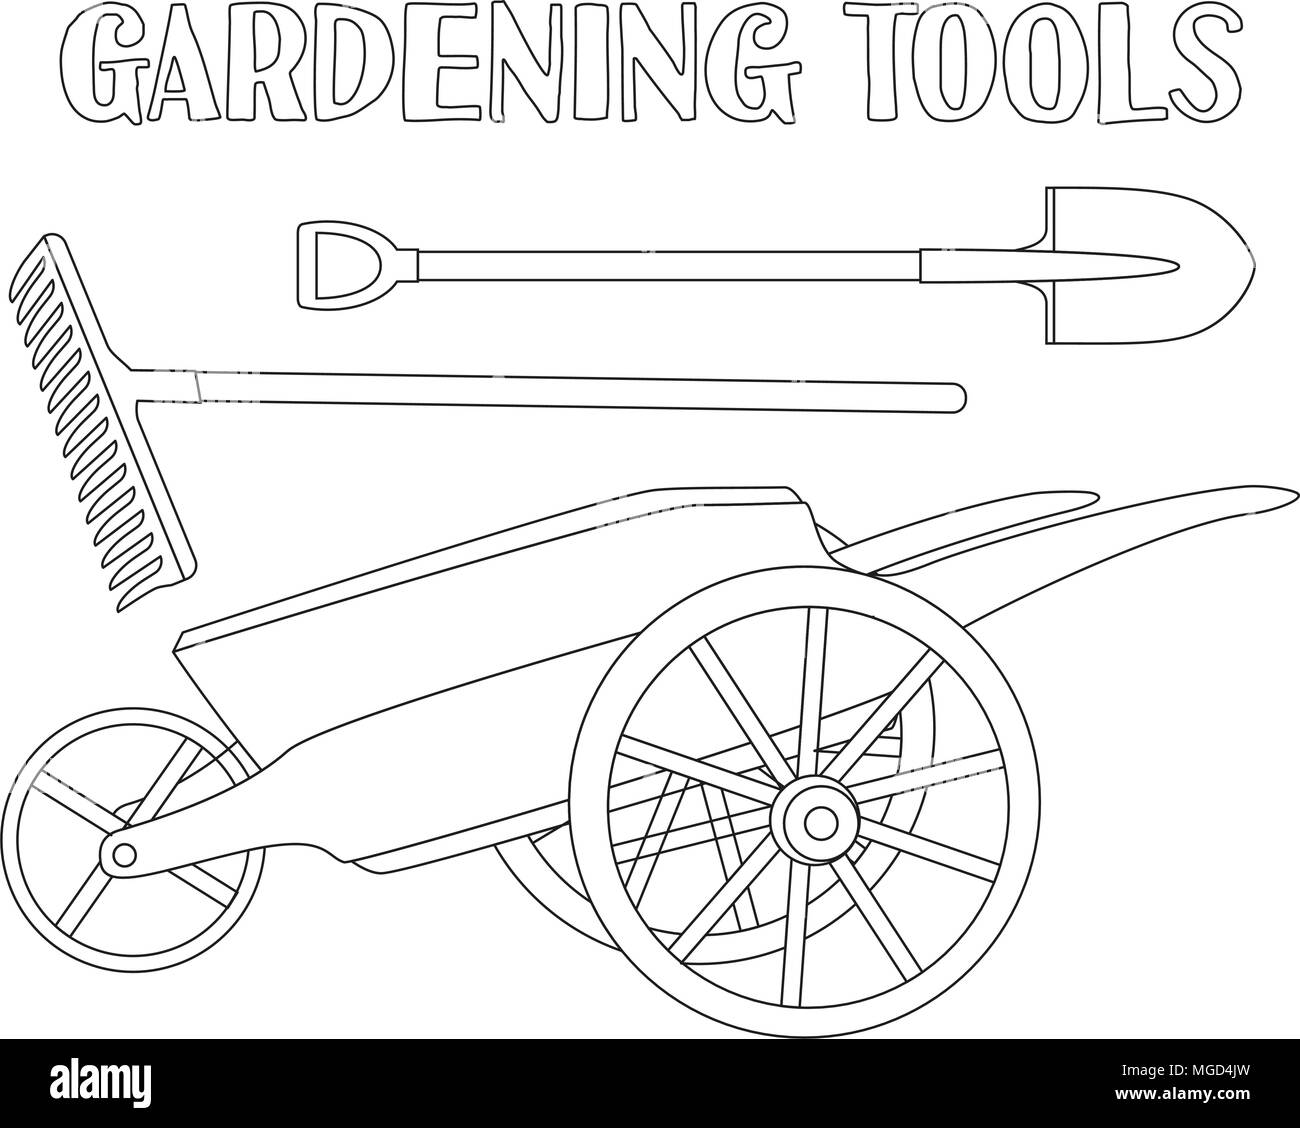 Line Art Black And White Garden Care Toolls Set Shovel Rake Wheelbarrow Coloring Book Page For Adults Kids Tool Vector Illustration